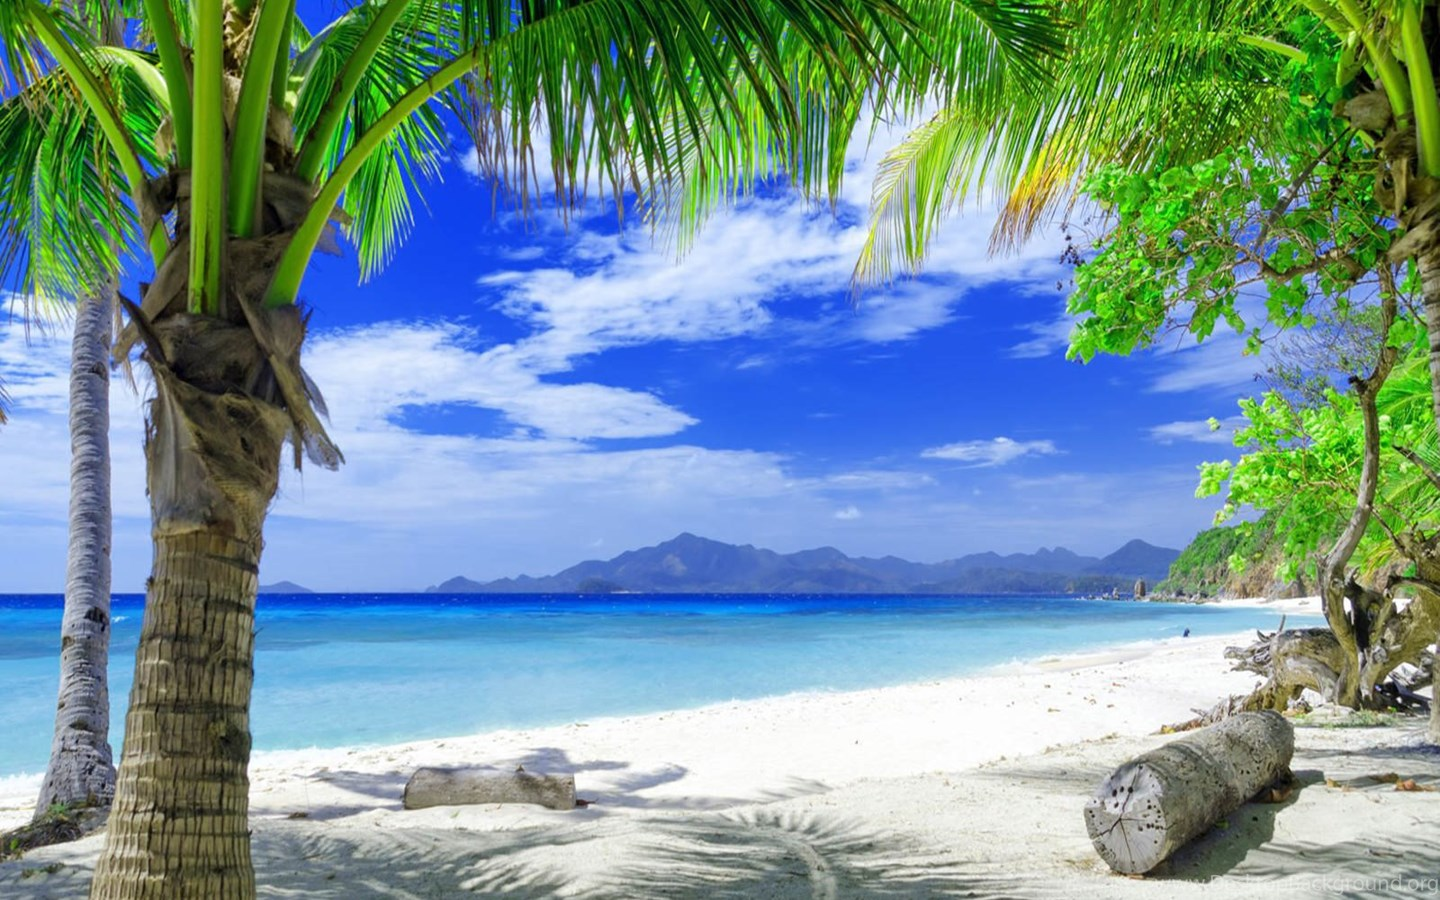 Beach Desktop Wallpaper Widescreen: Beach Beautiful Beach Desktop HD Wallpapers Free